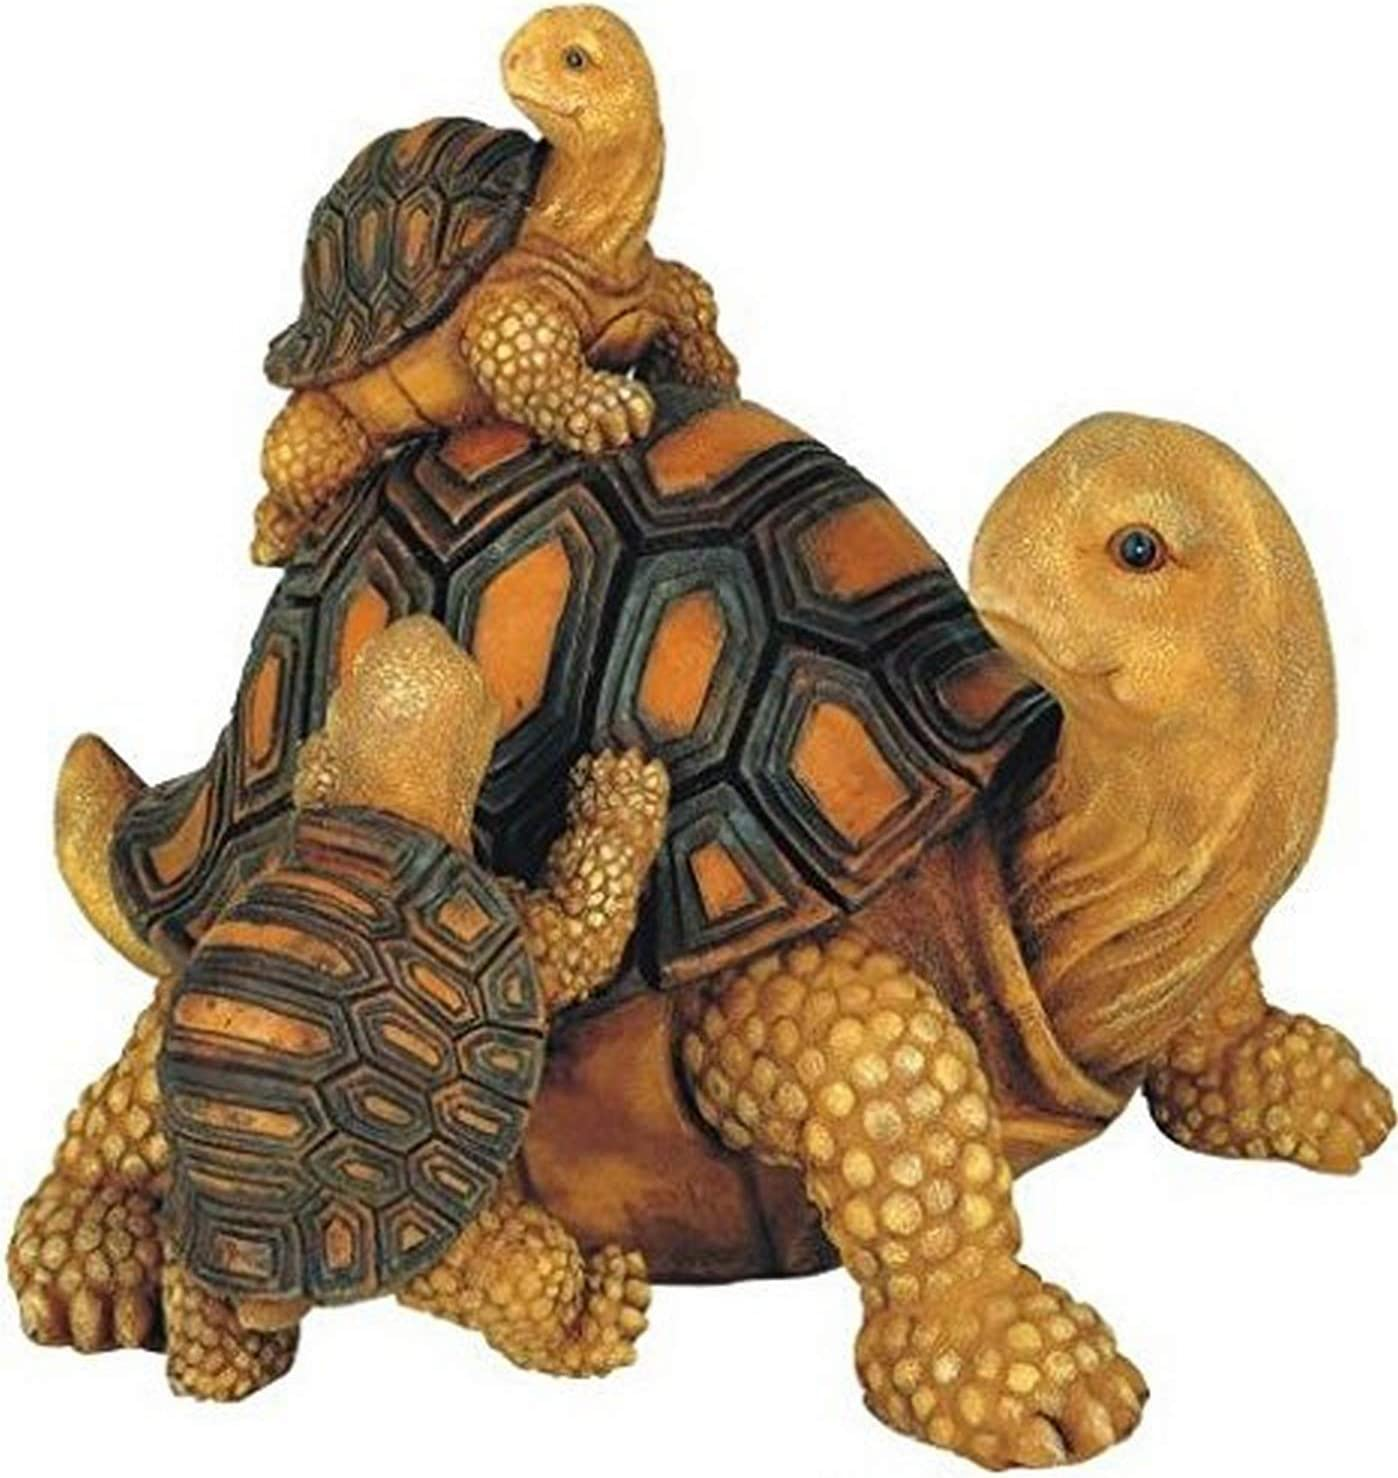 Chen Imports SS-G-61058 3 Turtles On Seesaw Garden Decoration Collectible figure Statue Model GSC George S